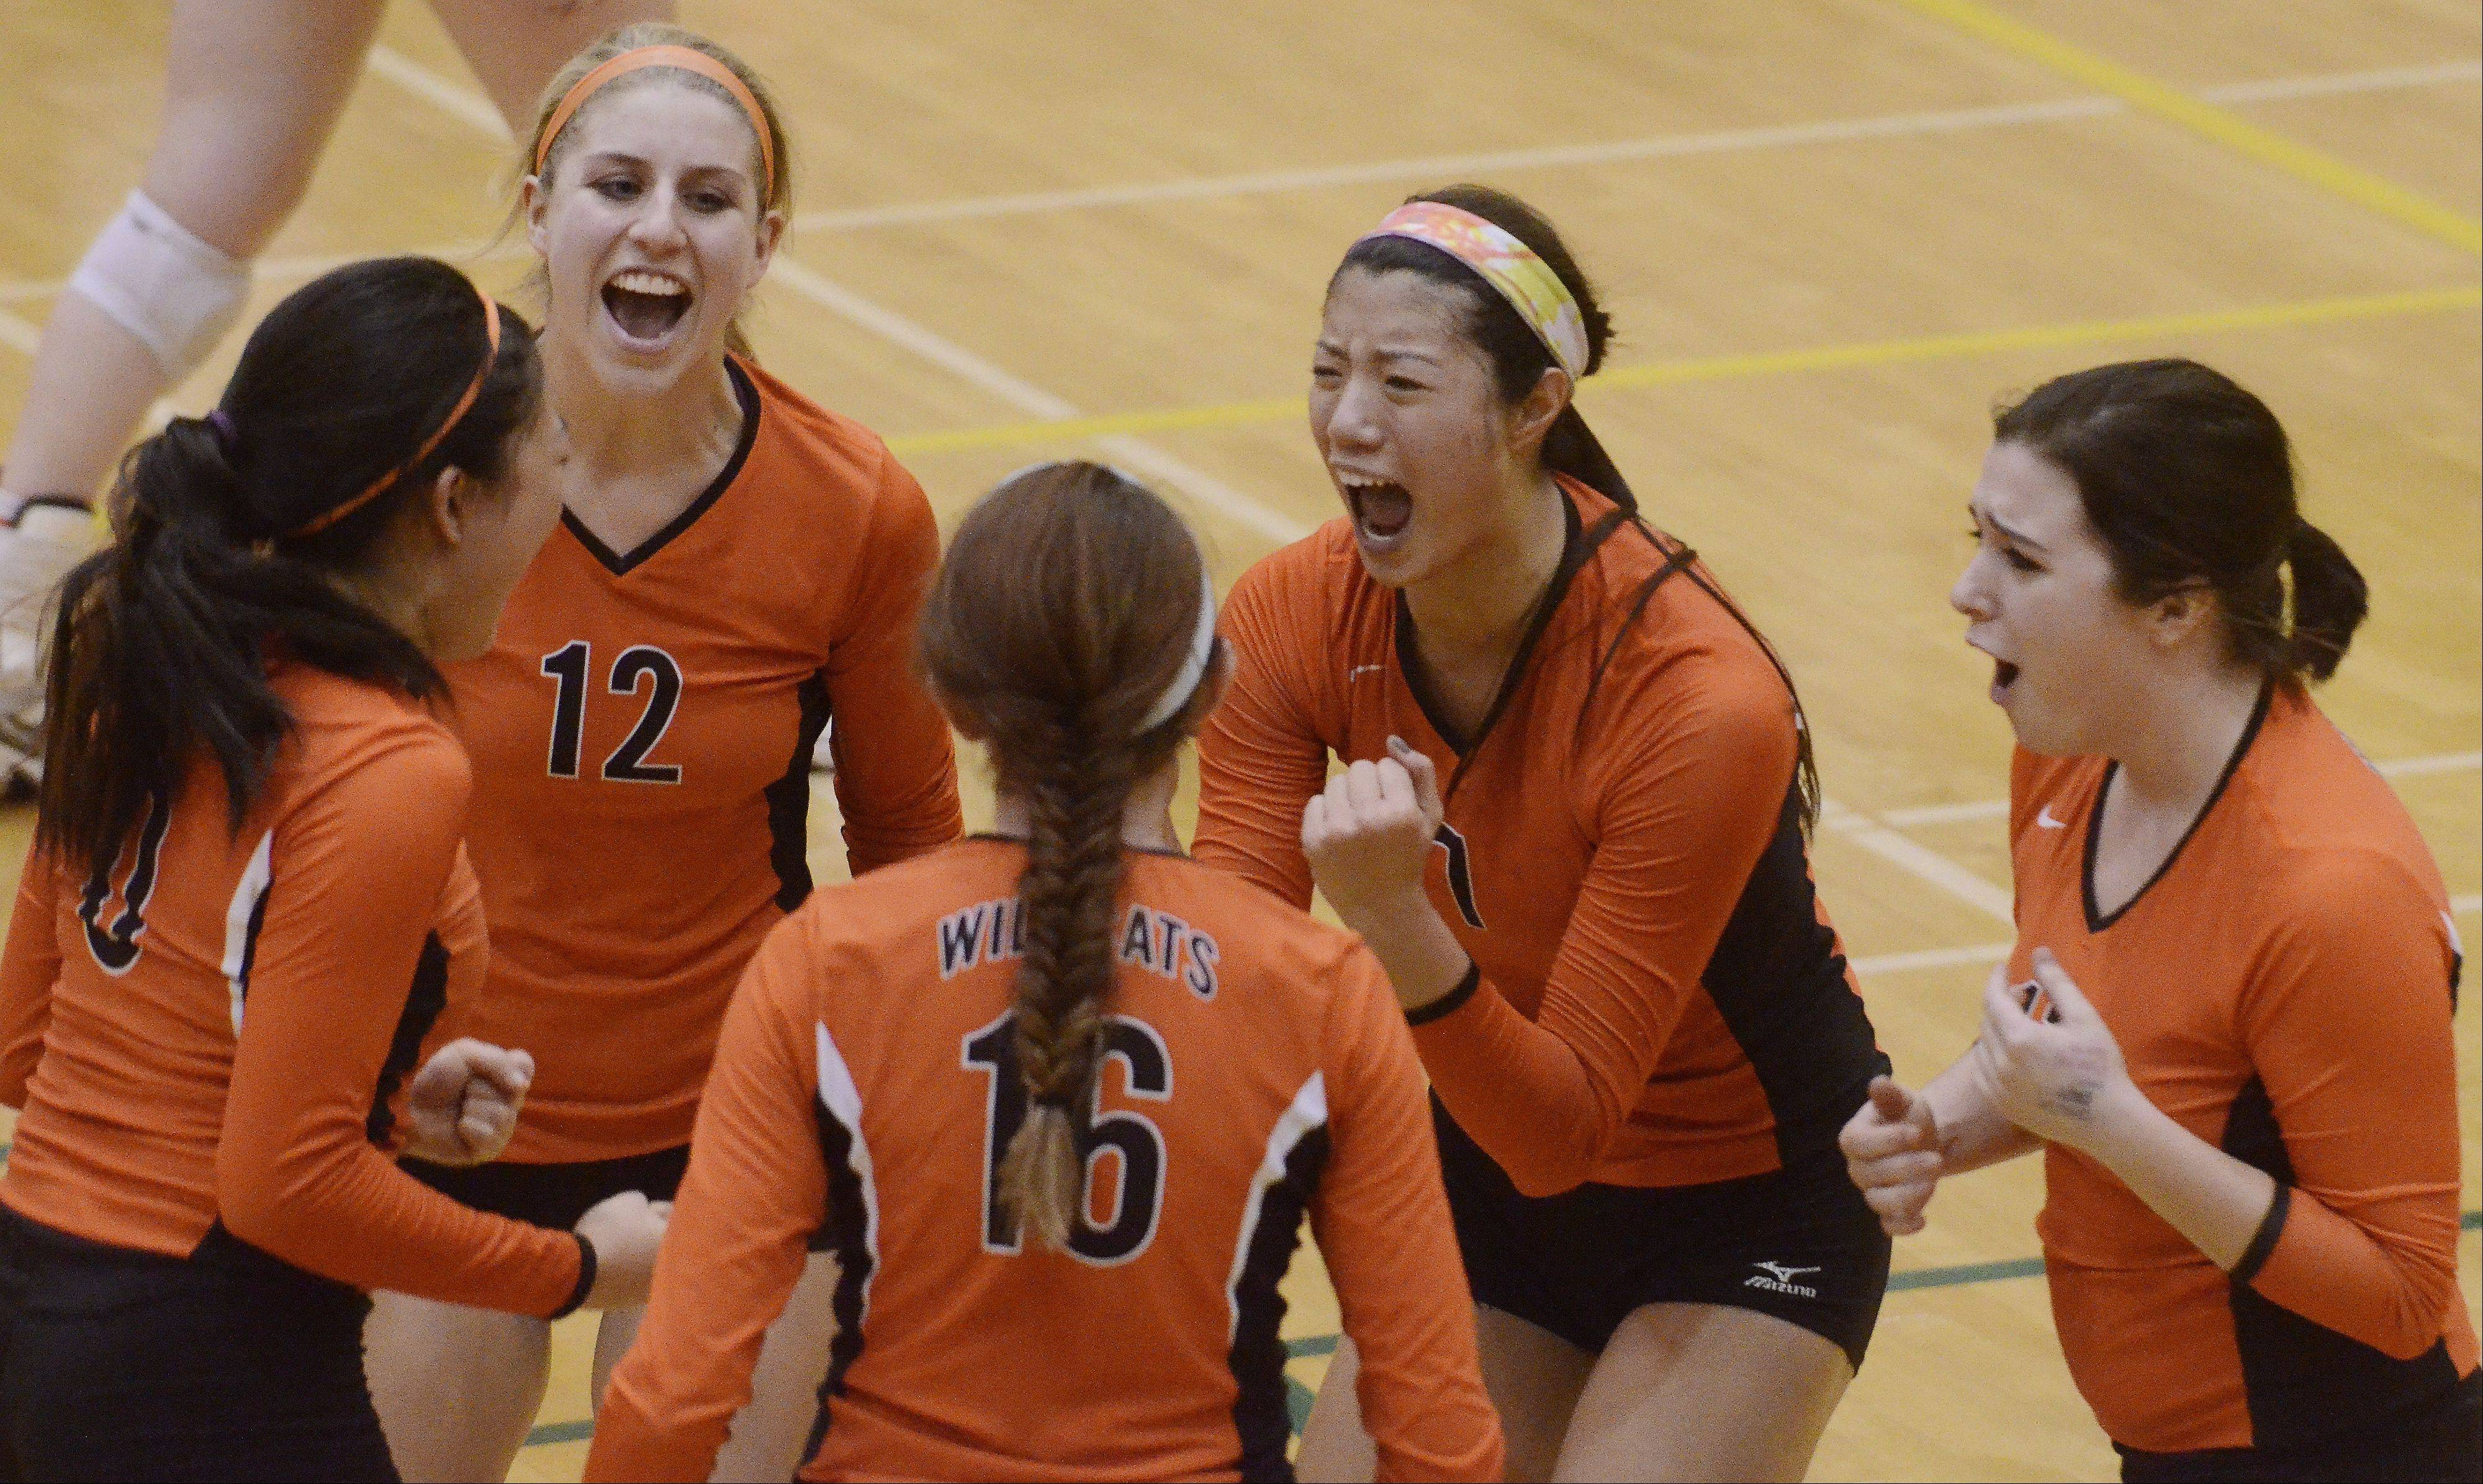 Clockwise from top left, Libertyville's Jordan Bauer, Cindy Zhou, Cassie Ostmeyer, Rhiannon Prentiss and Vicky Liu celebrate their victory over Hersey during Tuesday's sectional semifinal at Fremd High School in Palatine.